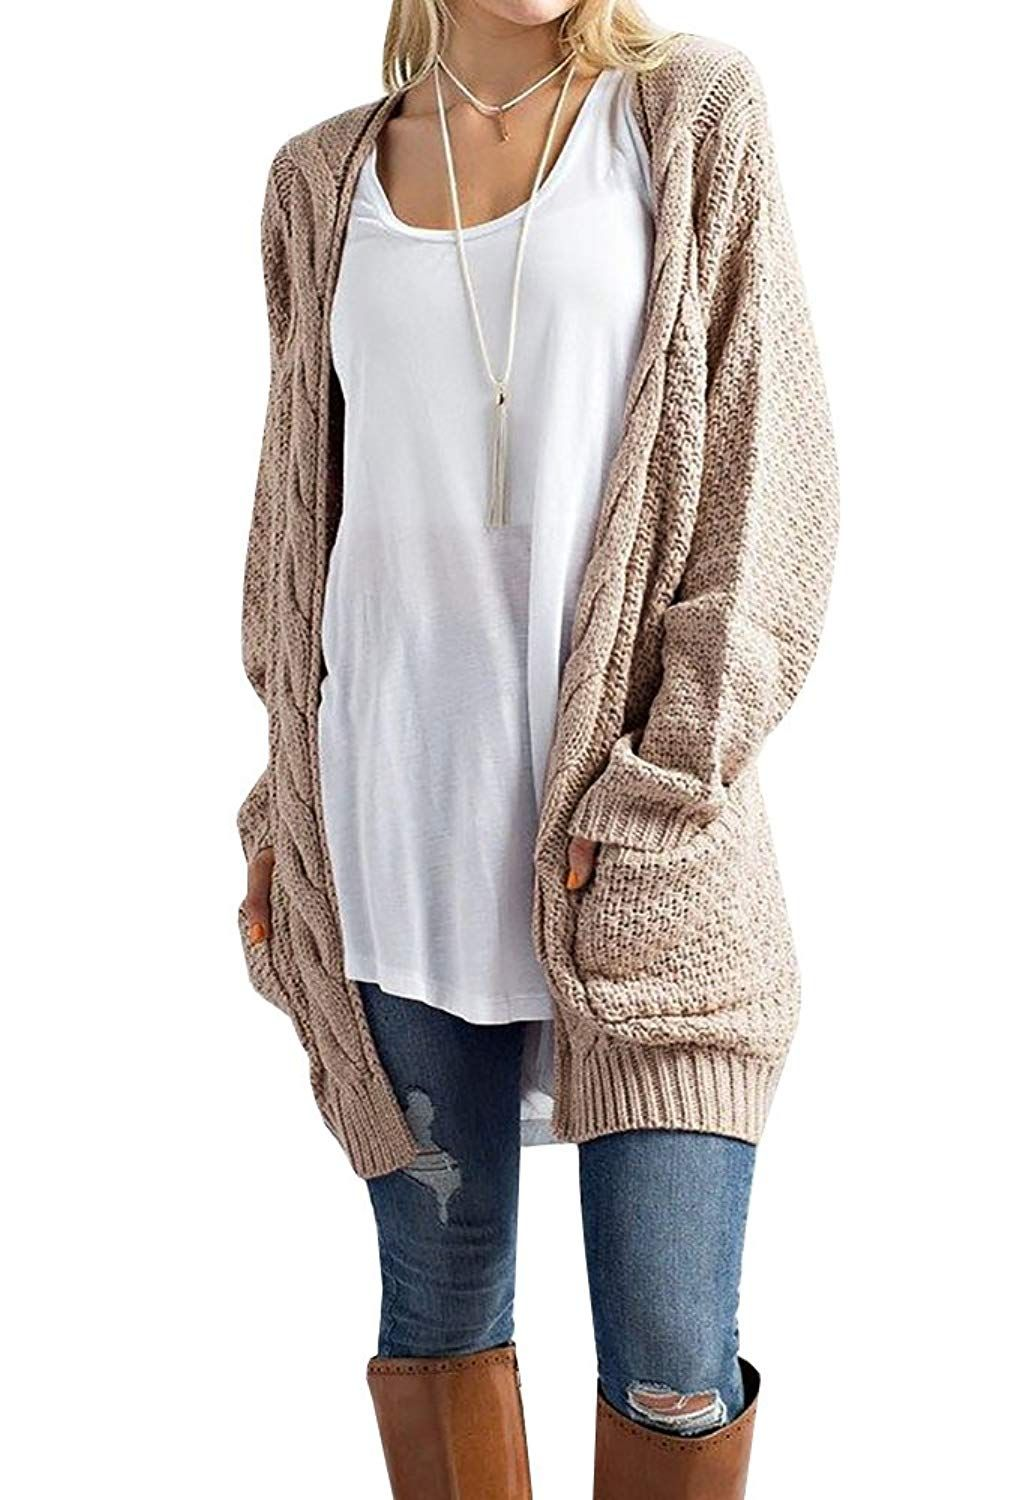 399dfe9805b1af Imily Bela Women s Boho Long Sleeve Open Front Chunky Warm Cardigans  Pointelle Pullover Sweater Blouses at